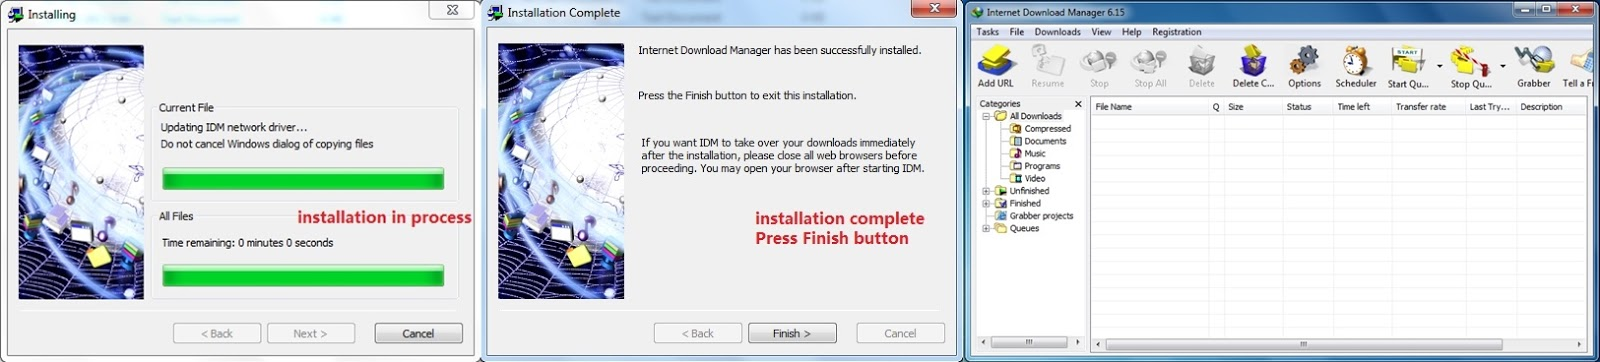 internet download manager how to use